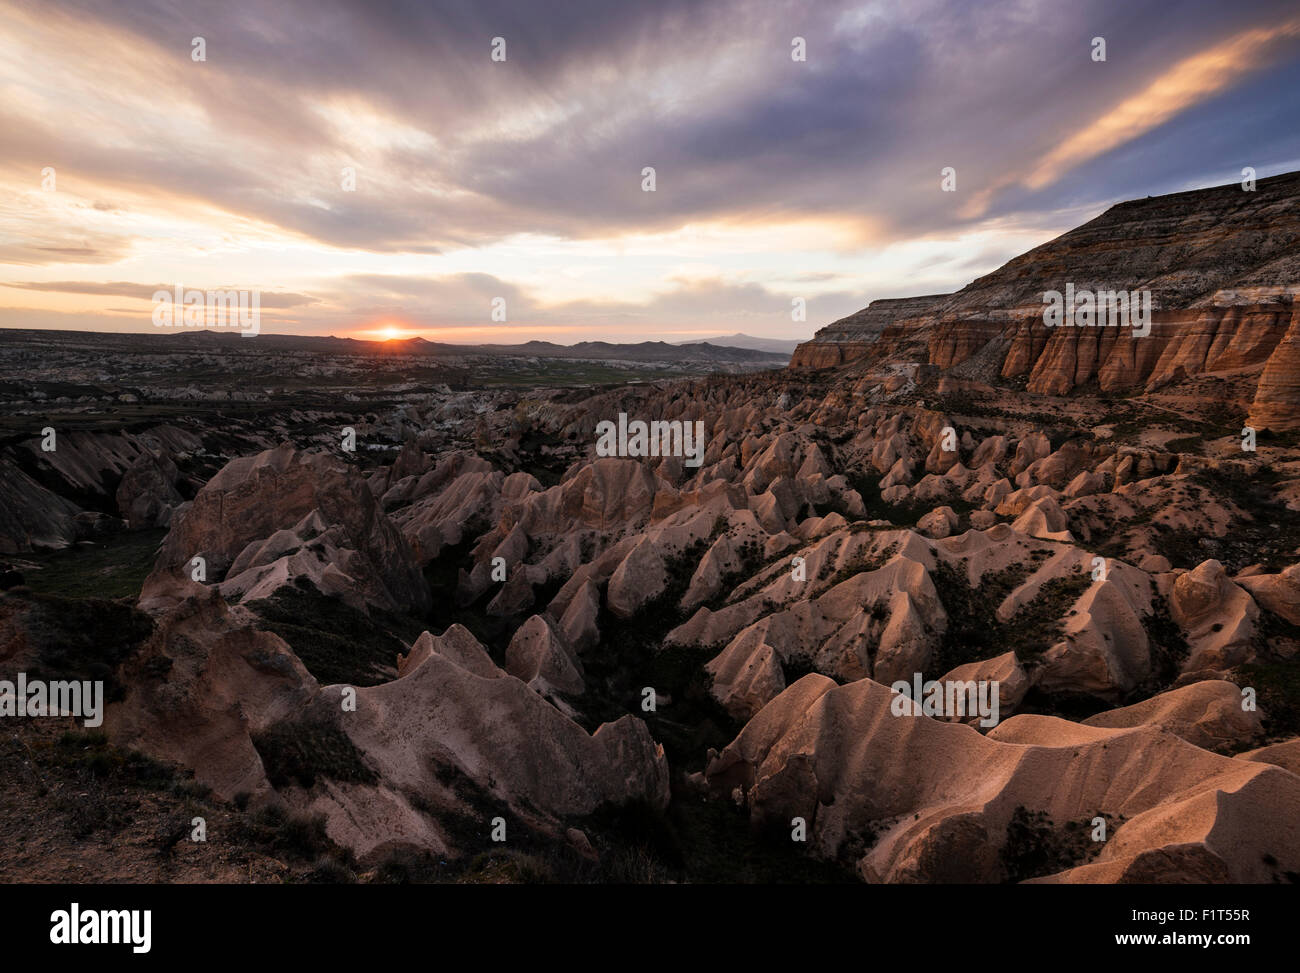 View from Aktepe Hill at sunset over Red Valley, Goreme National Park, UNESCO, Cappadocia, Anatolia, Turkey, Asia - Stock Image